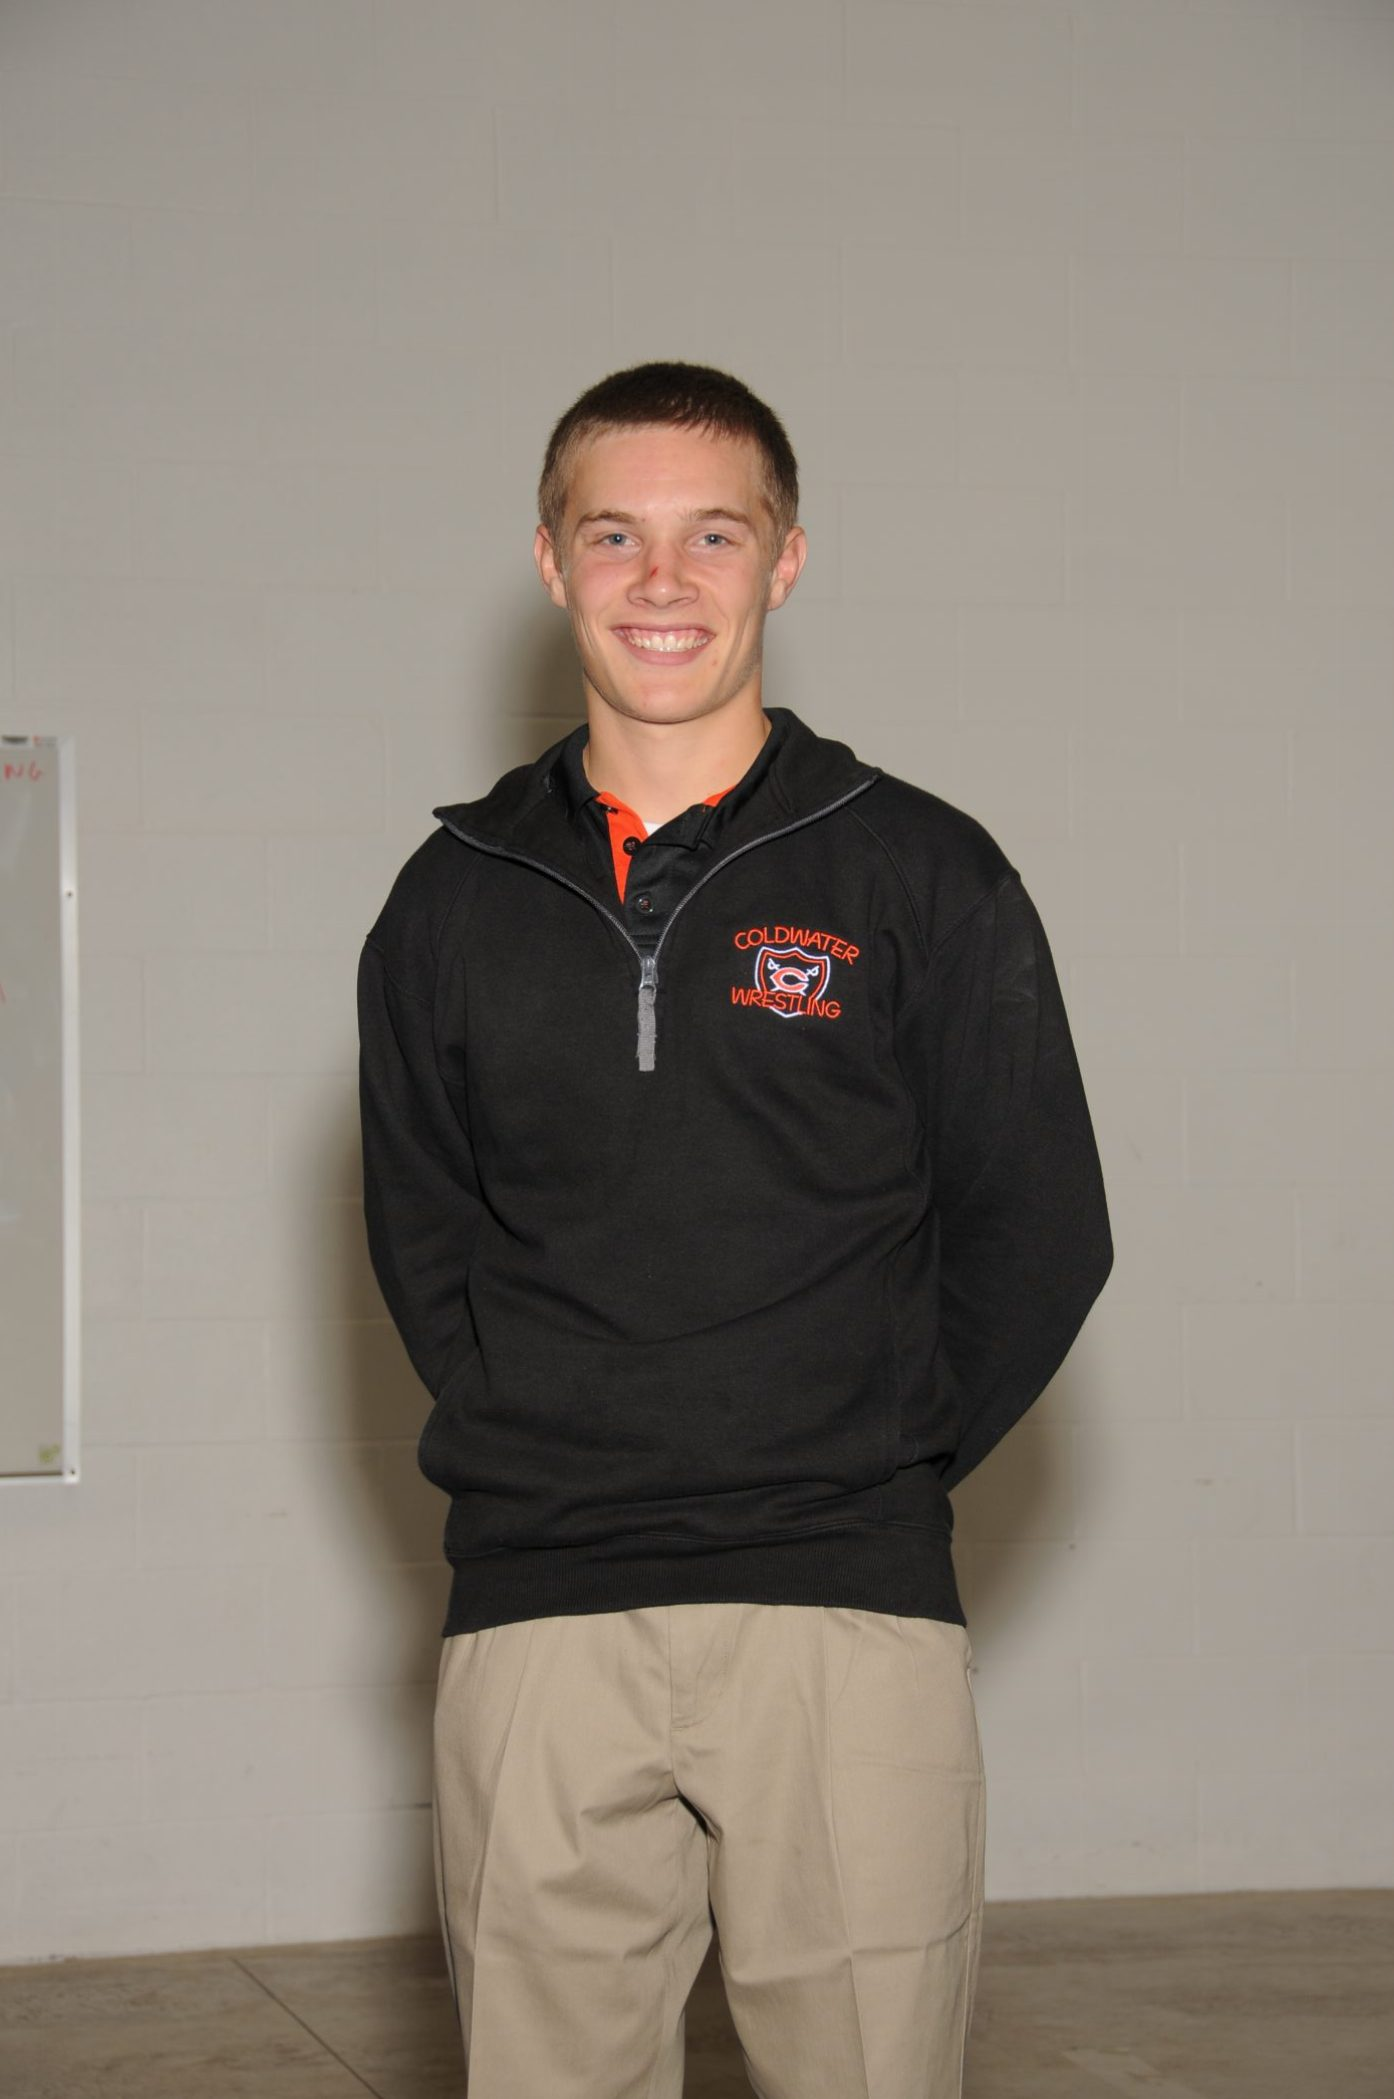 Coldwater grad Jay Uhlenhake named as Varsity Assistant Wrestling Coach